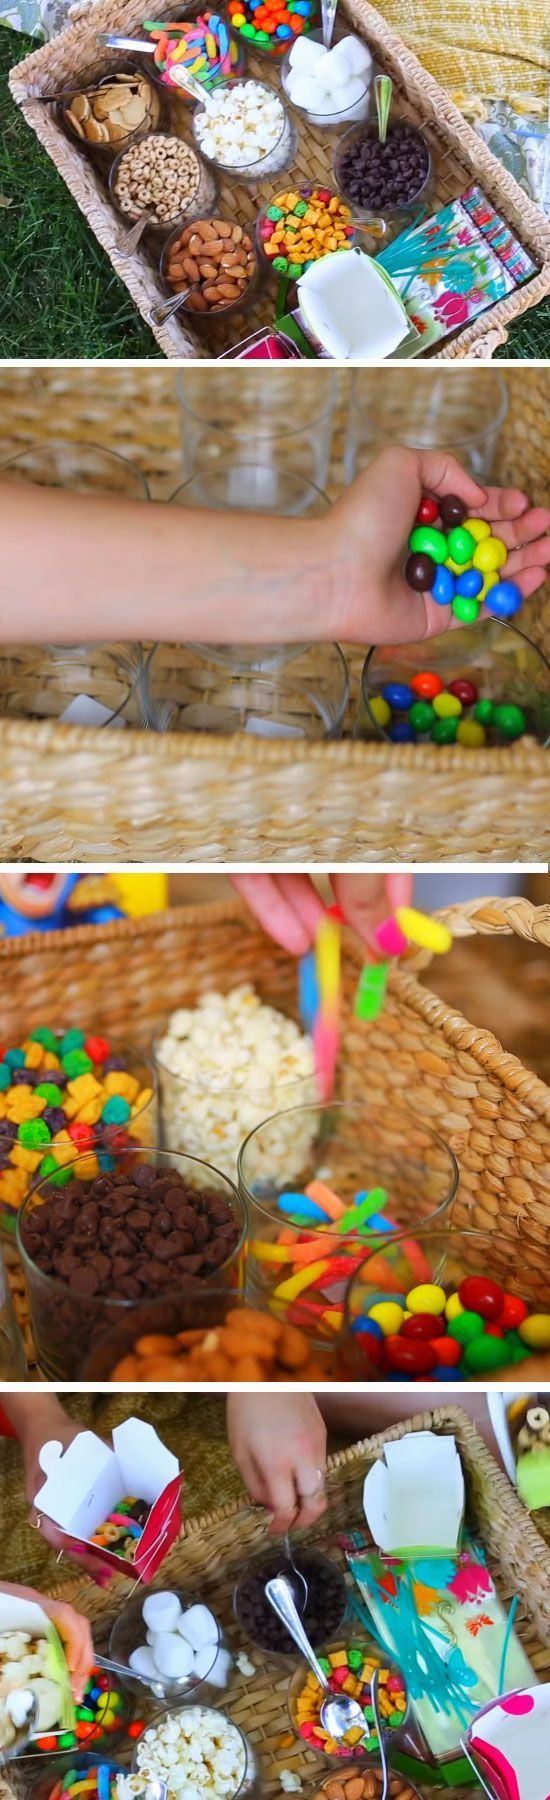 Trail Mix Bar   9 DIY Summer Backyard Party Ideas for Kids that will get the party started!